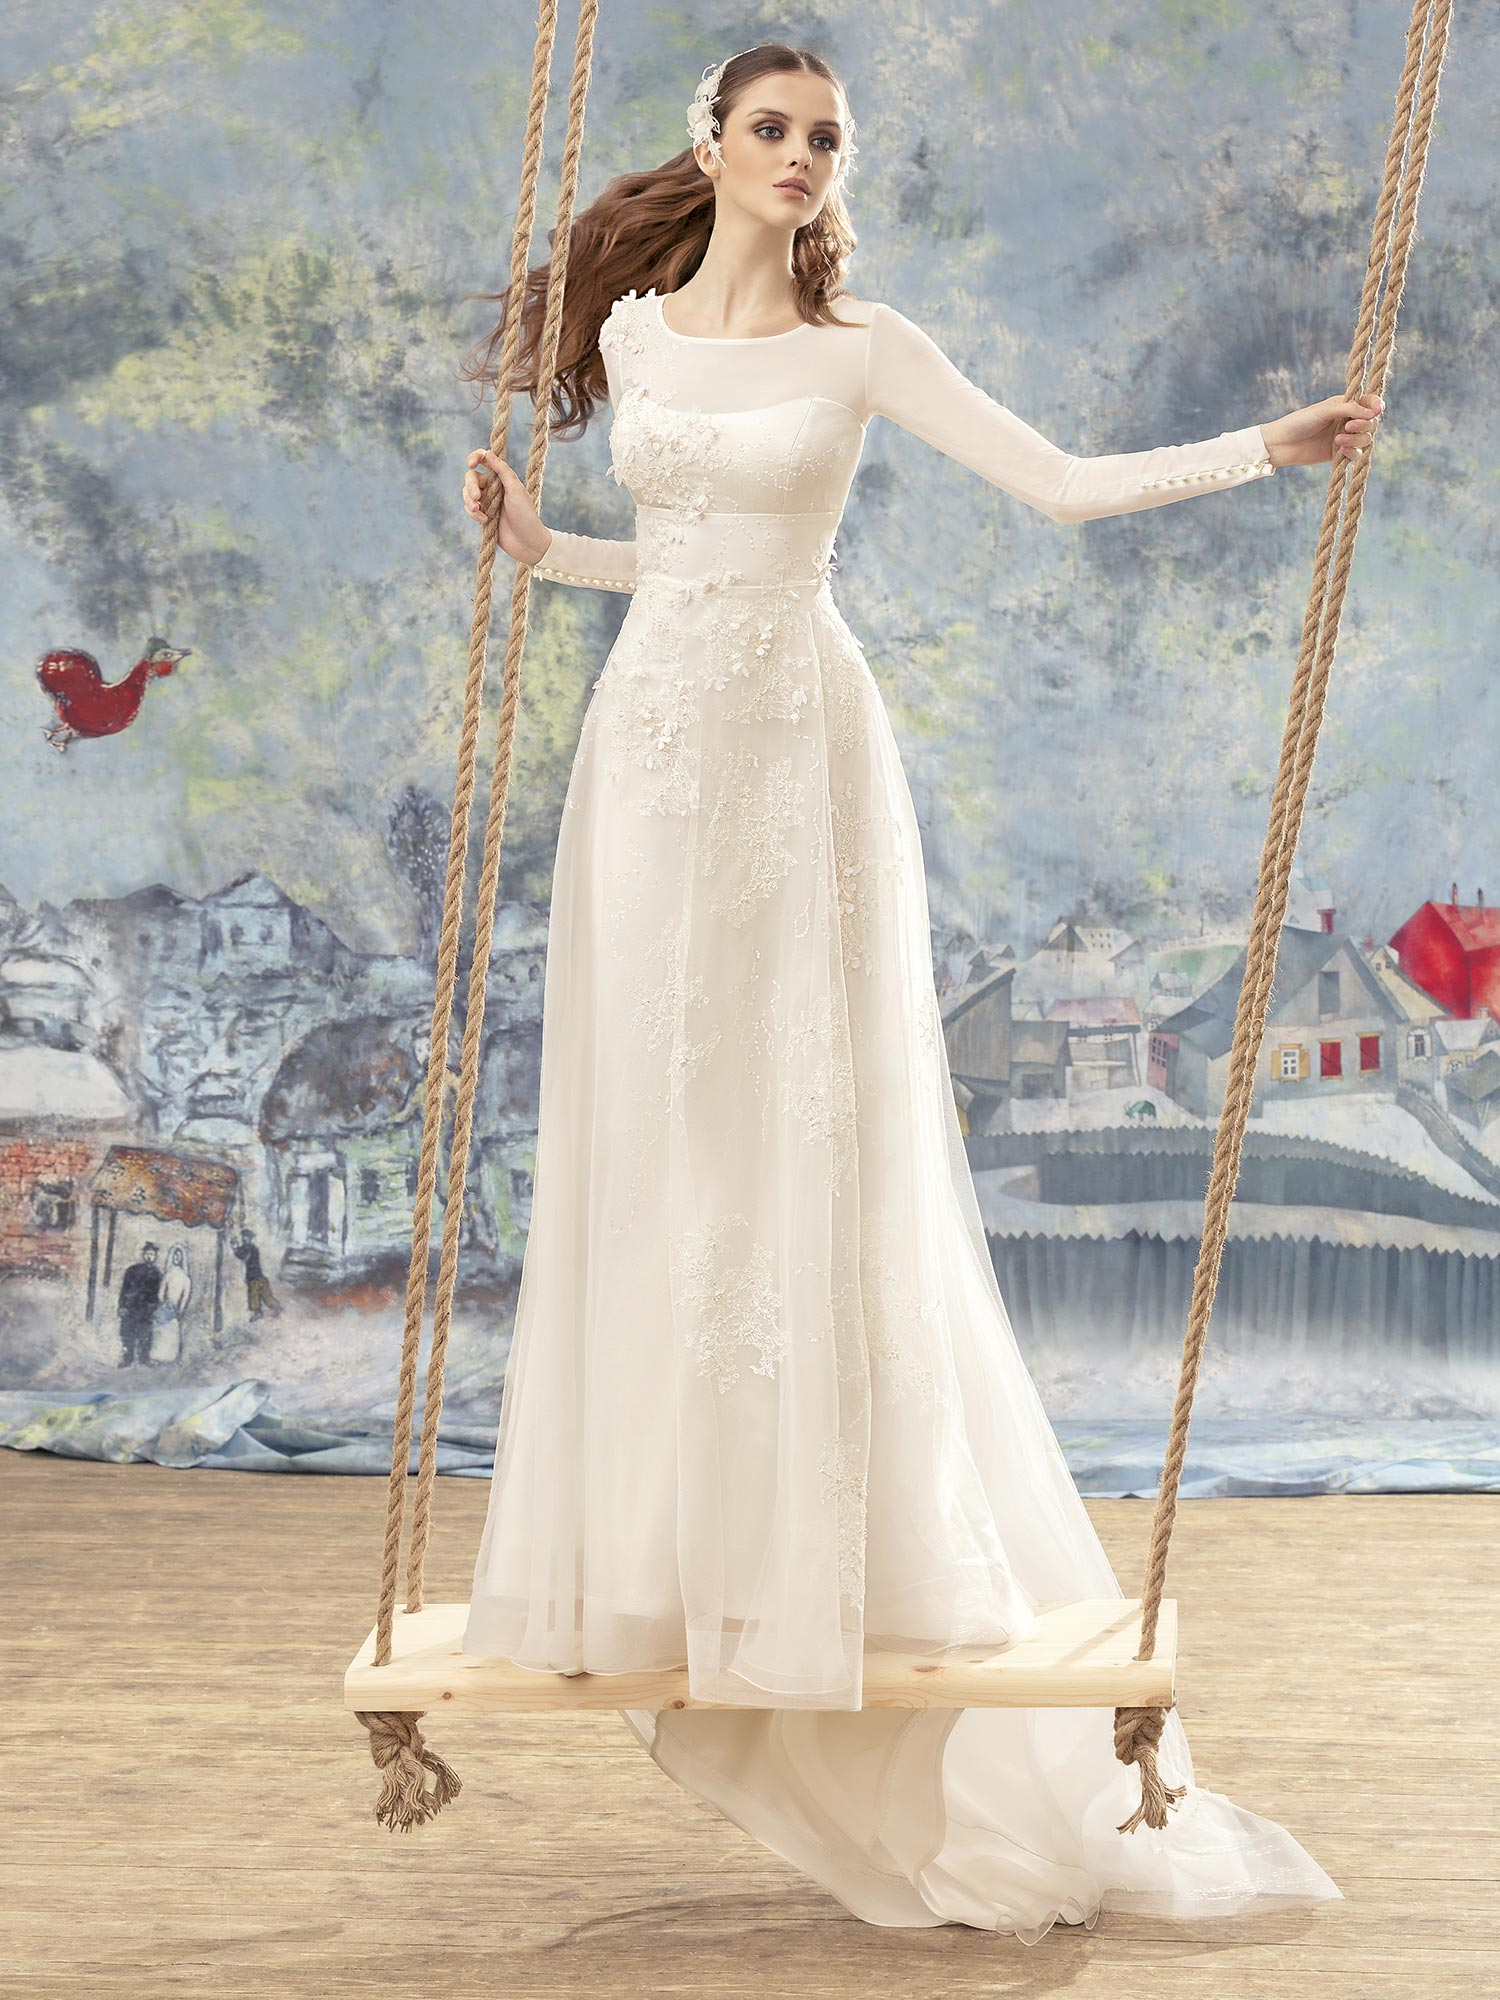 Papilio Long-sleeve A-line wedding gown with 3D floral appliques